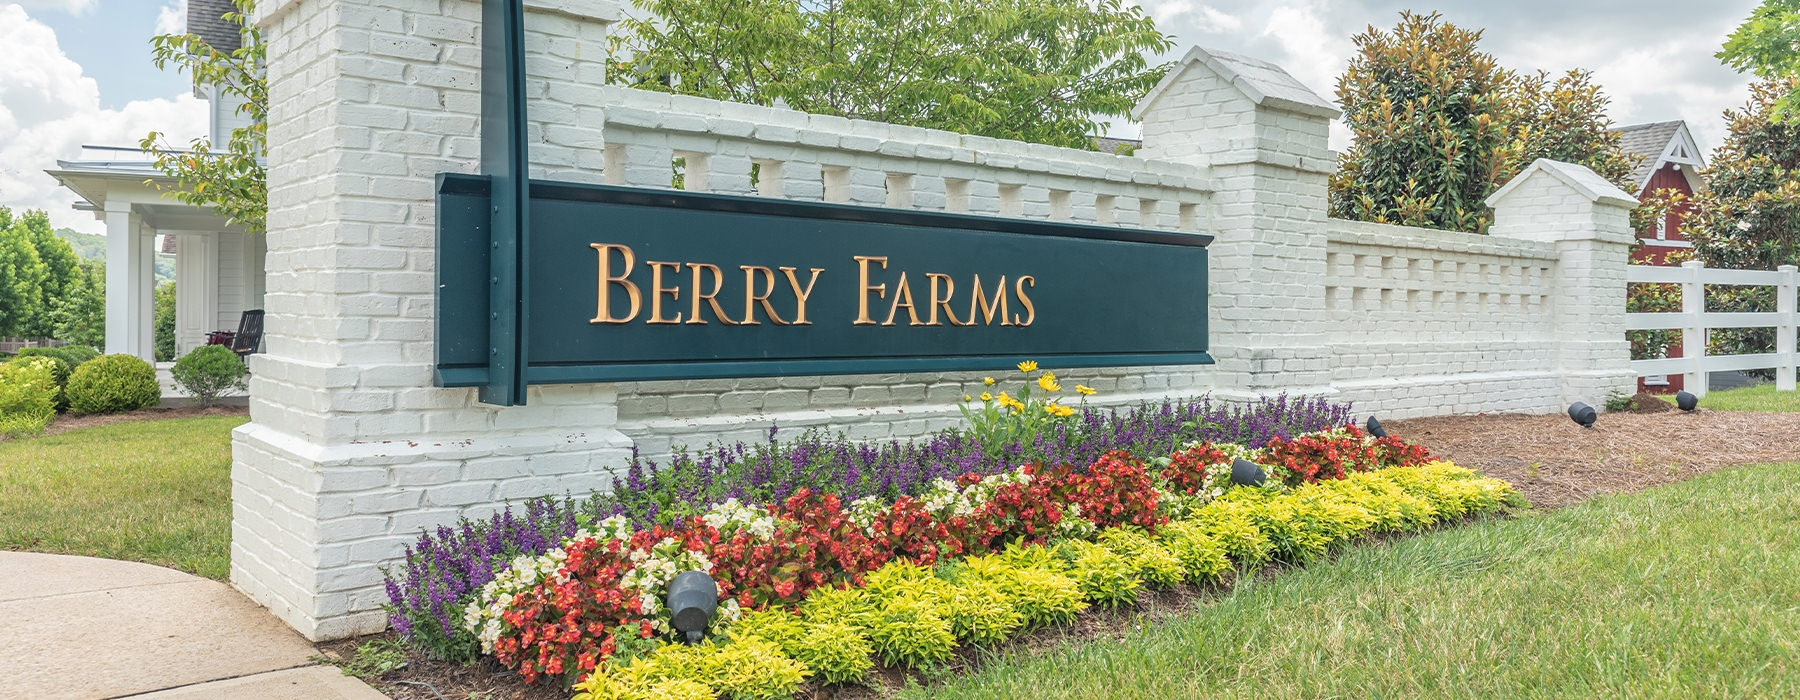 Entrance to Berry Farms beautifully landscaped with flowers,